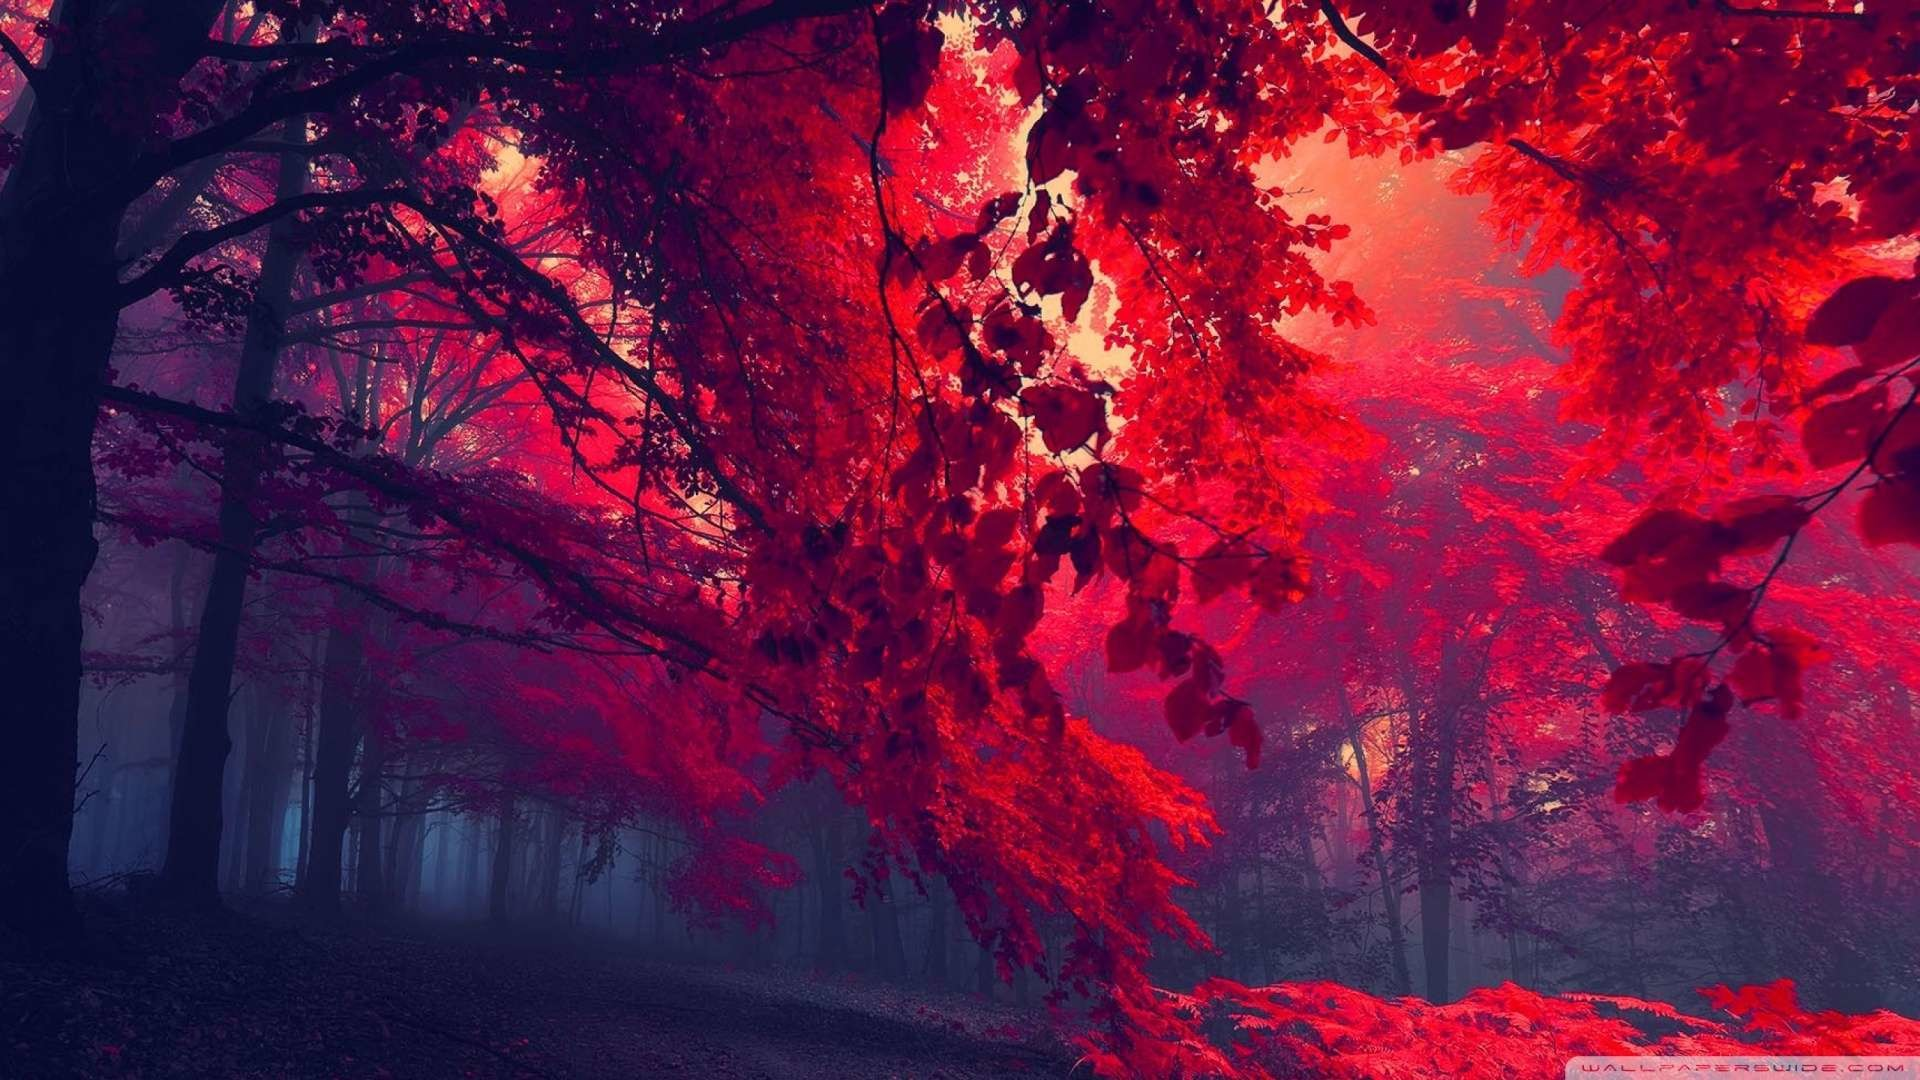 1920x1080 Wallpaper: Red Forest 4 Wallpaper 1080p HD. Upload at February 25 .